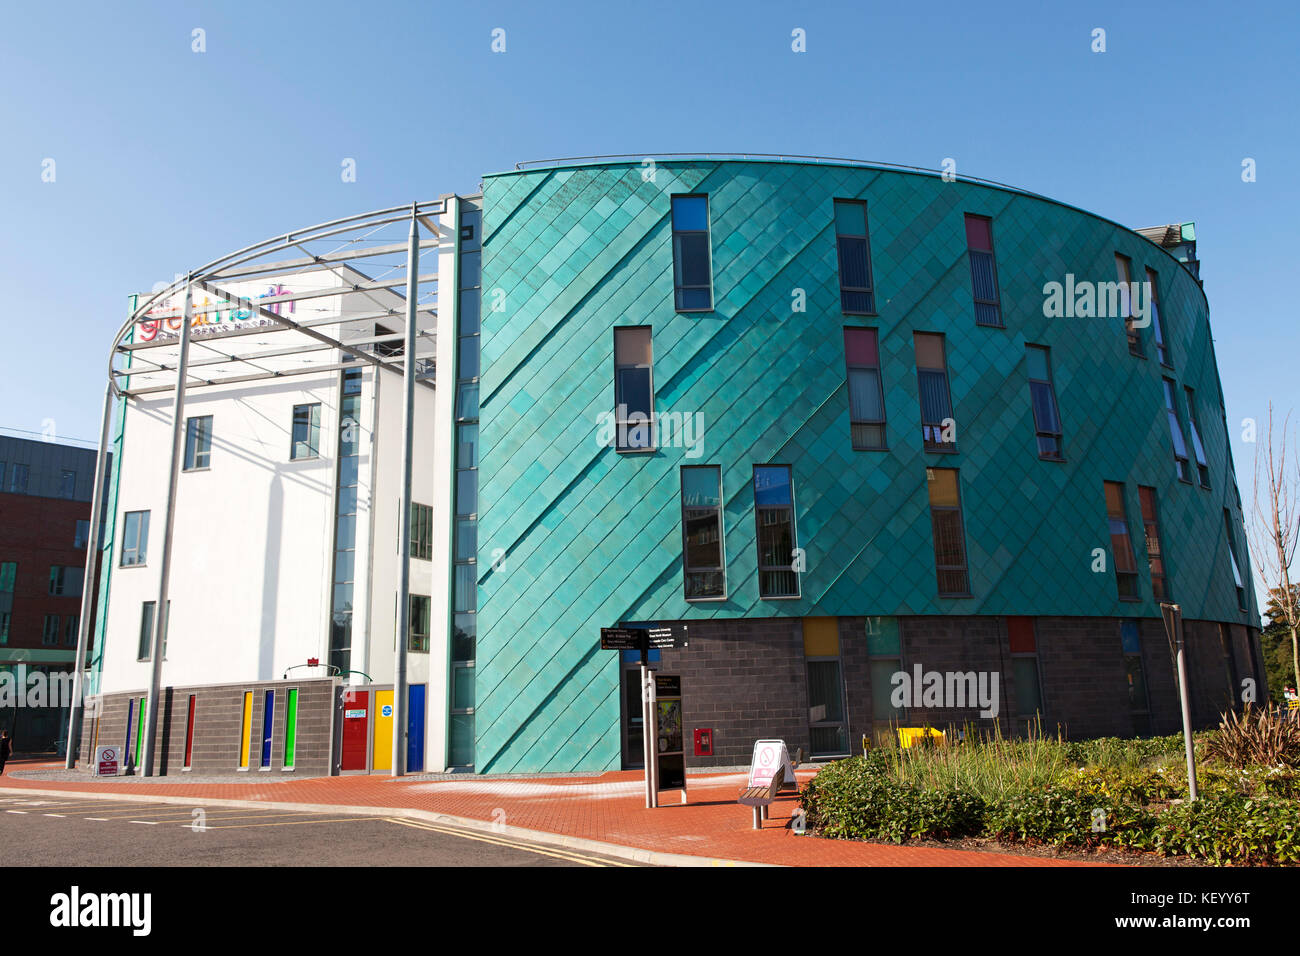 The Great North Children's Hospital in Newcastle-upon-Tyne, England. The hospital is part of Britain's National - Stock Image